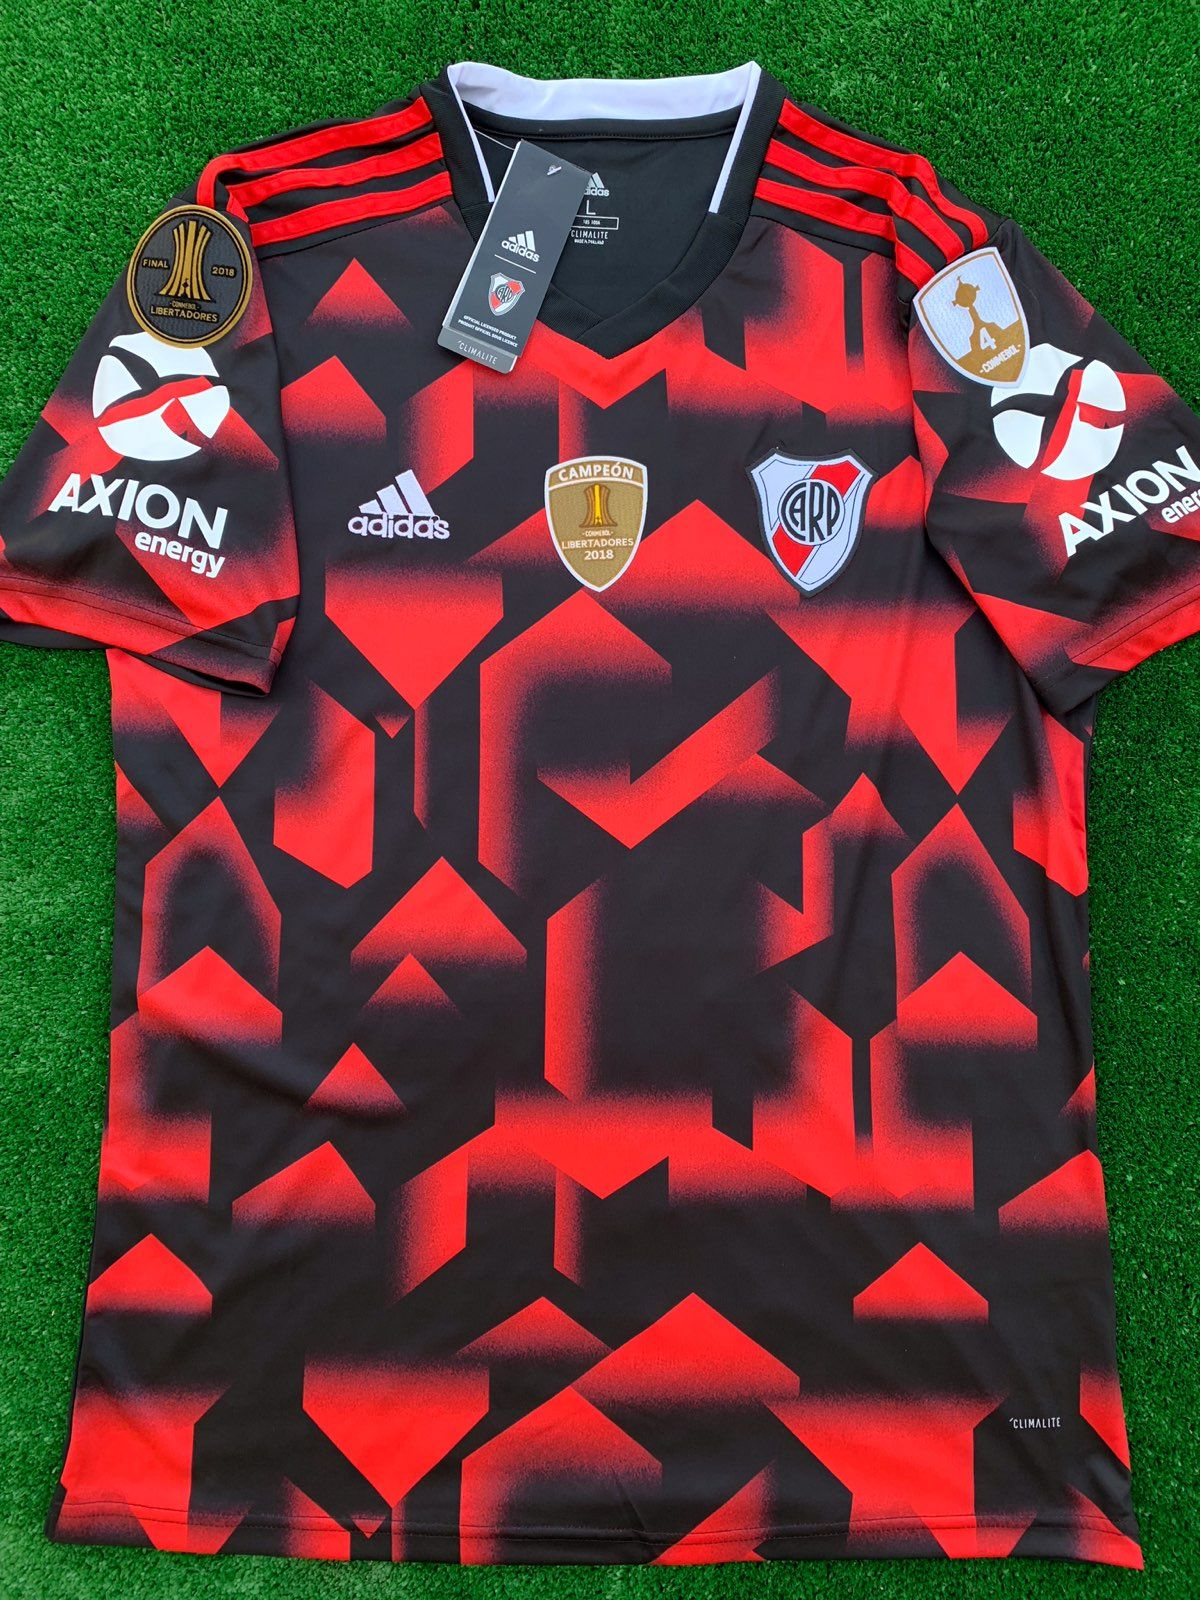 Brand new adidas river plate away jersey with colombian